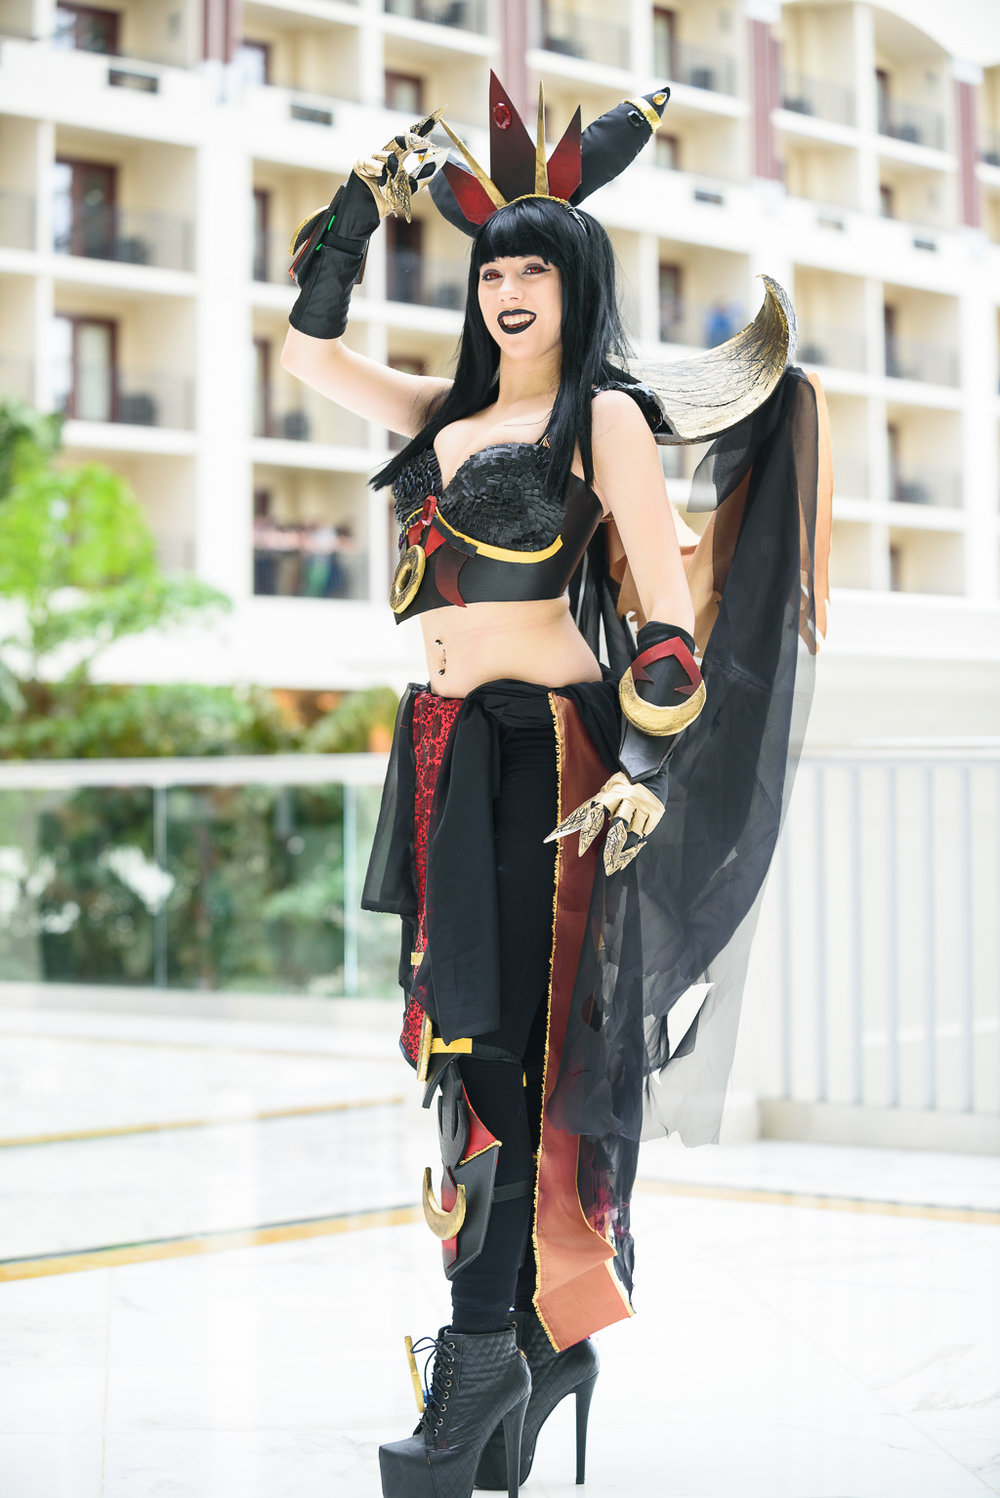 Magfest-Cosplay-12.jpg